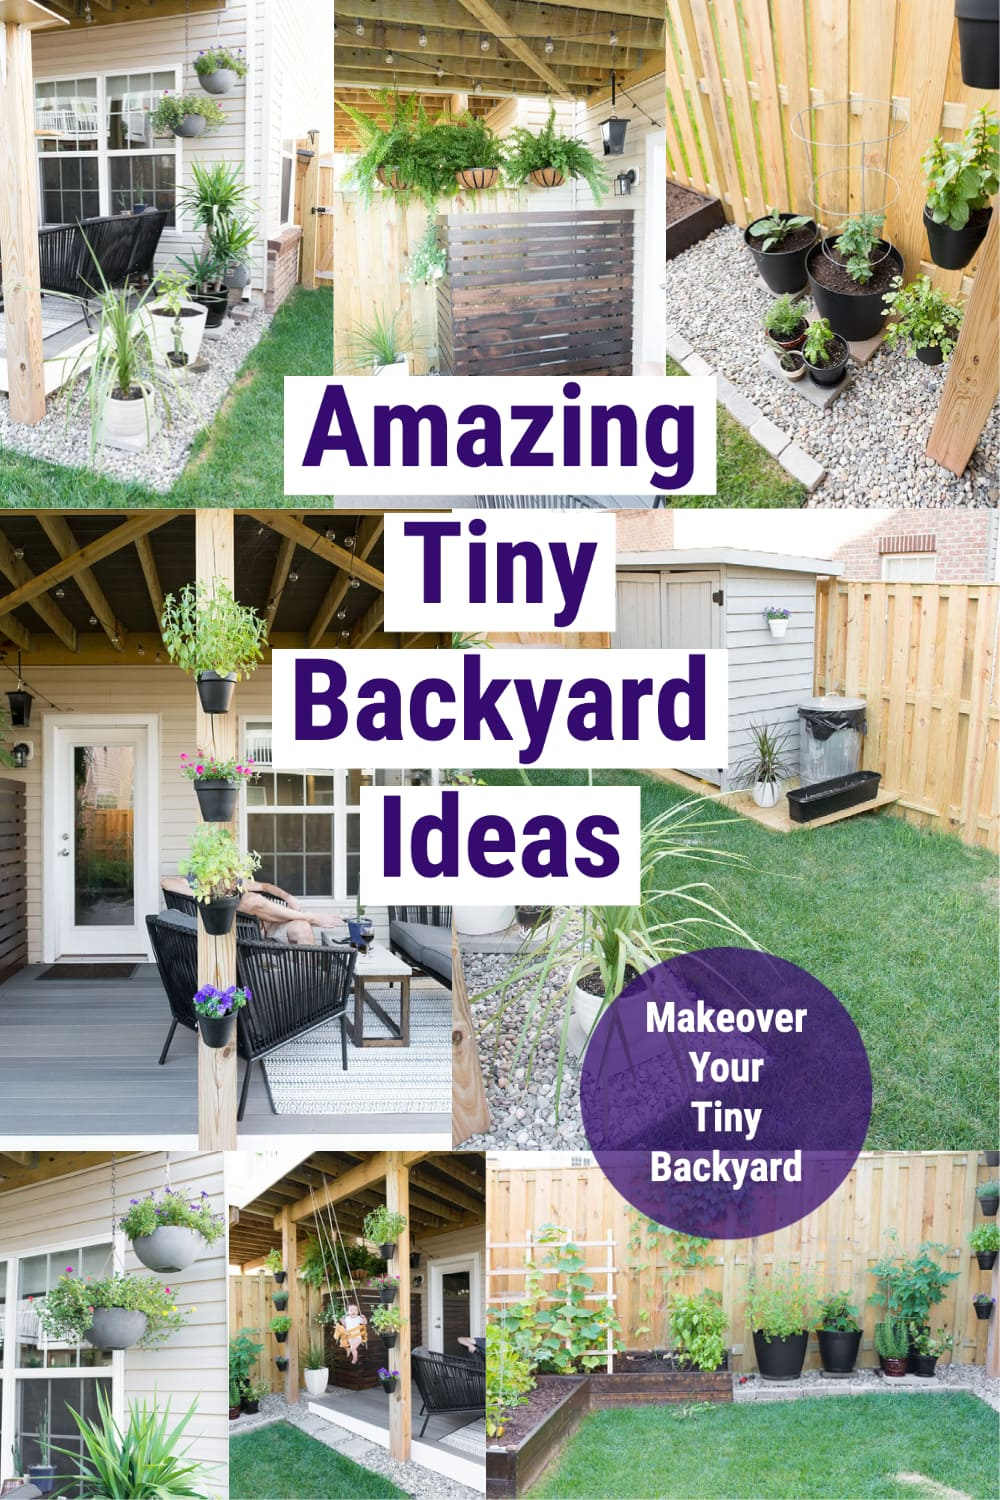 image collage of tiny backyard ideas with text Amazing Tiny Backyard Ideas